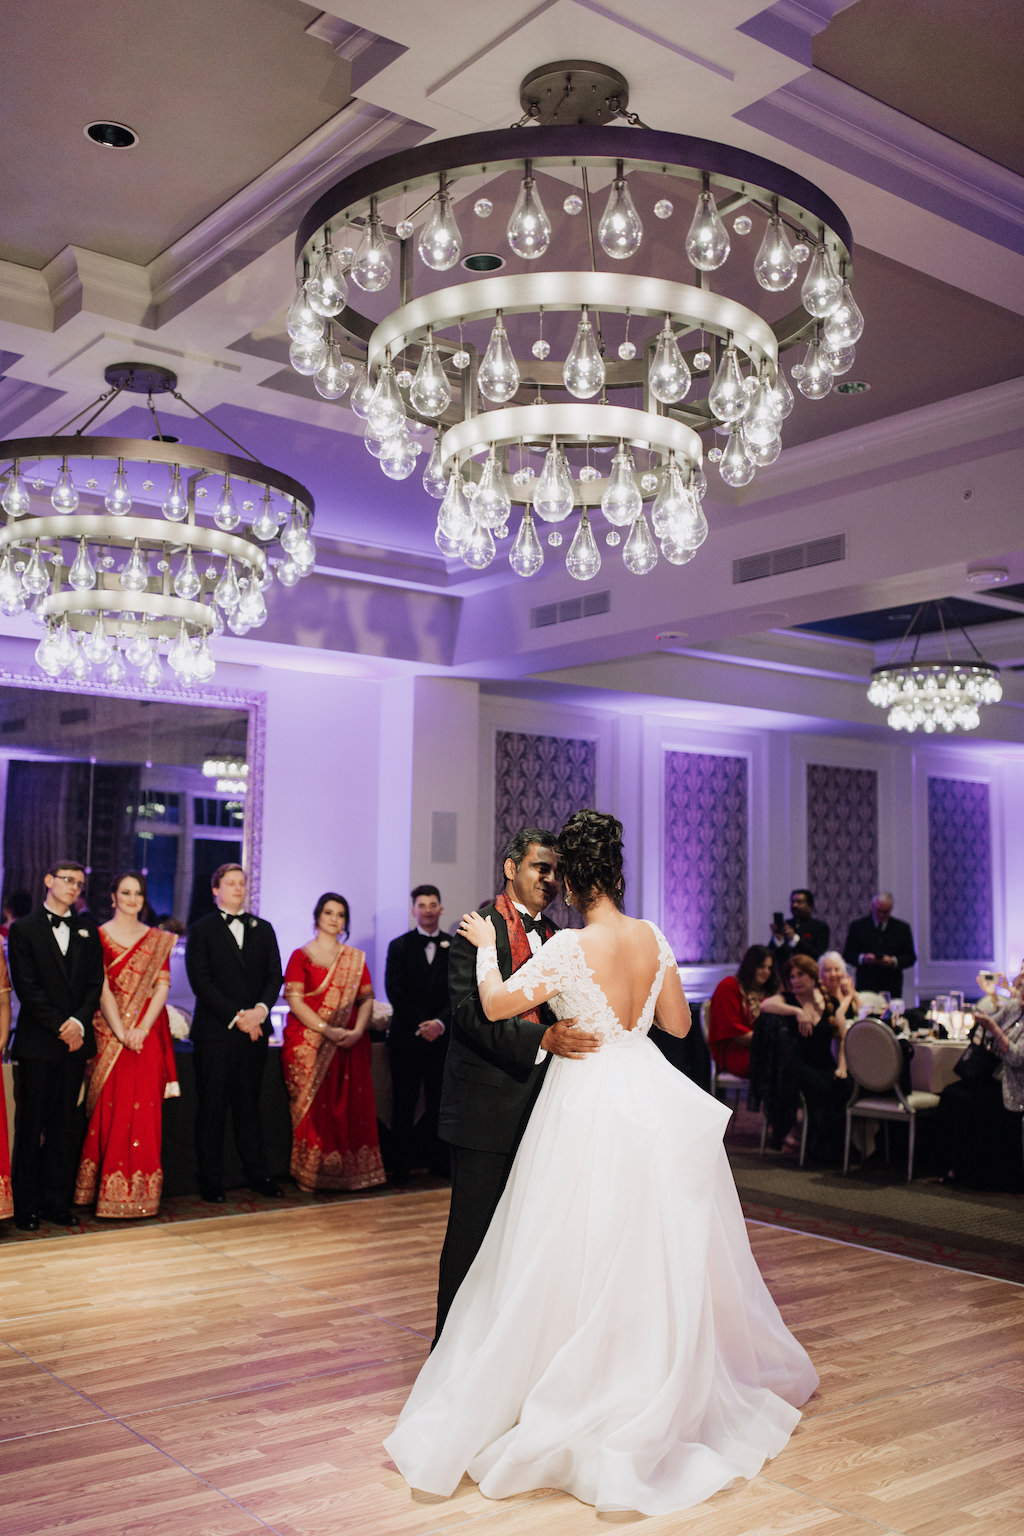 First Dance Wedding Portrait with Bulb Chandelier   Downtown St. Pete Boutique Hotel Venue The Birchwood